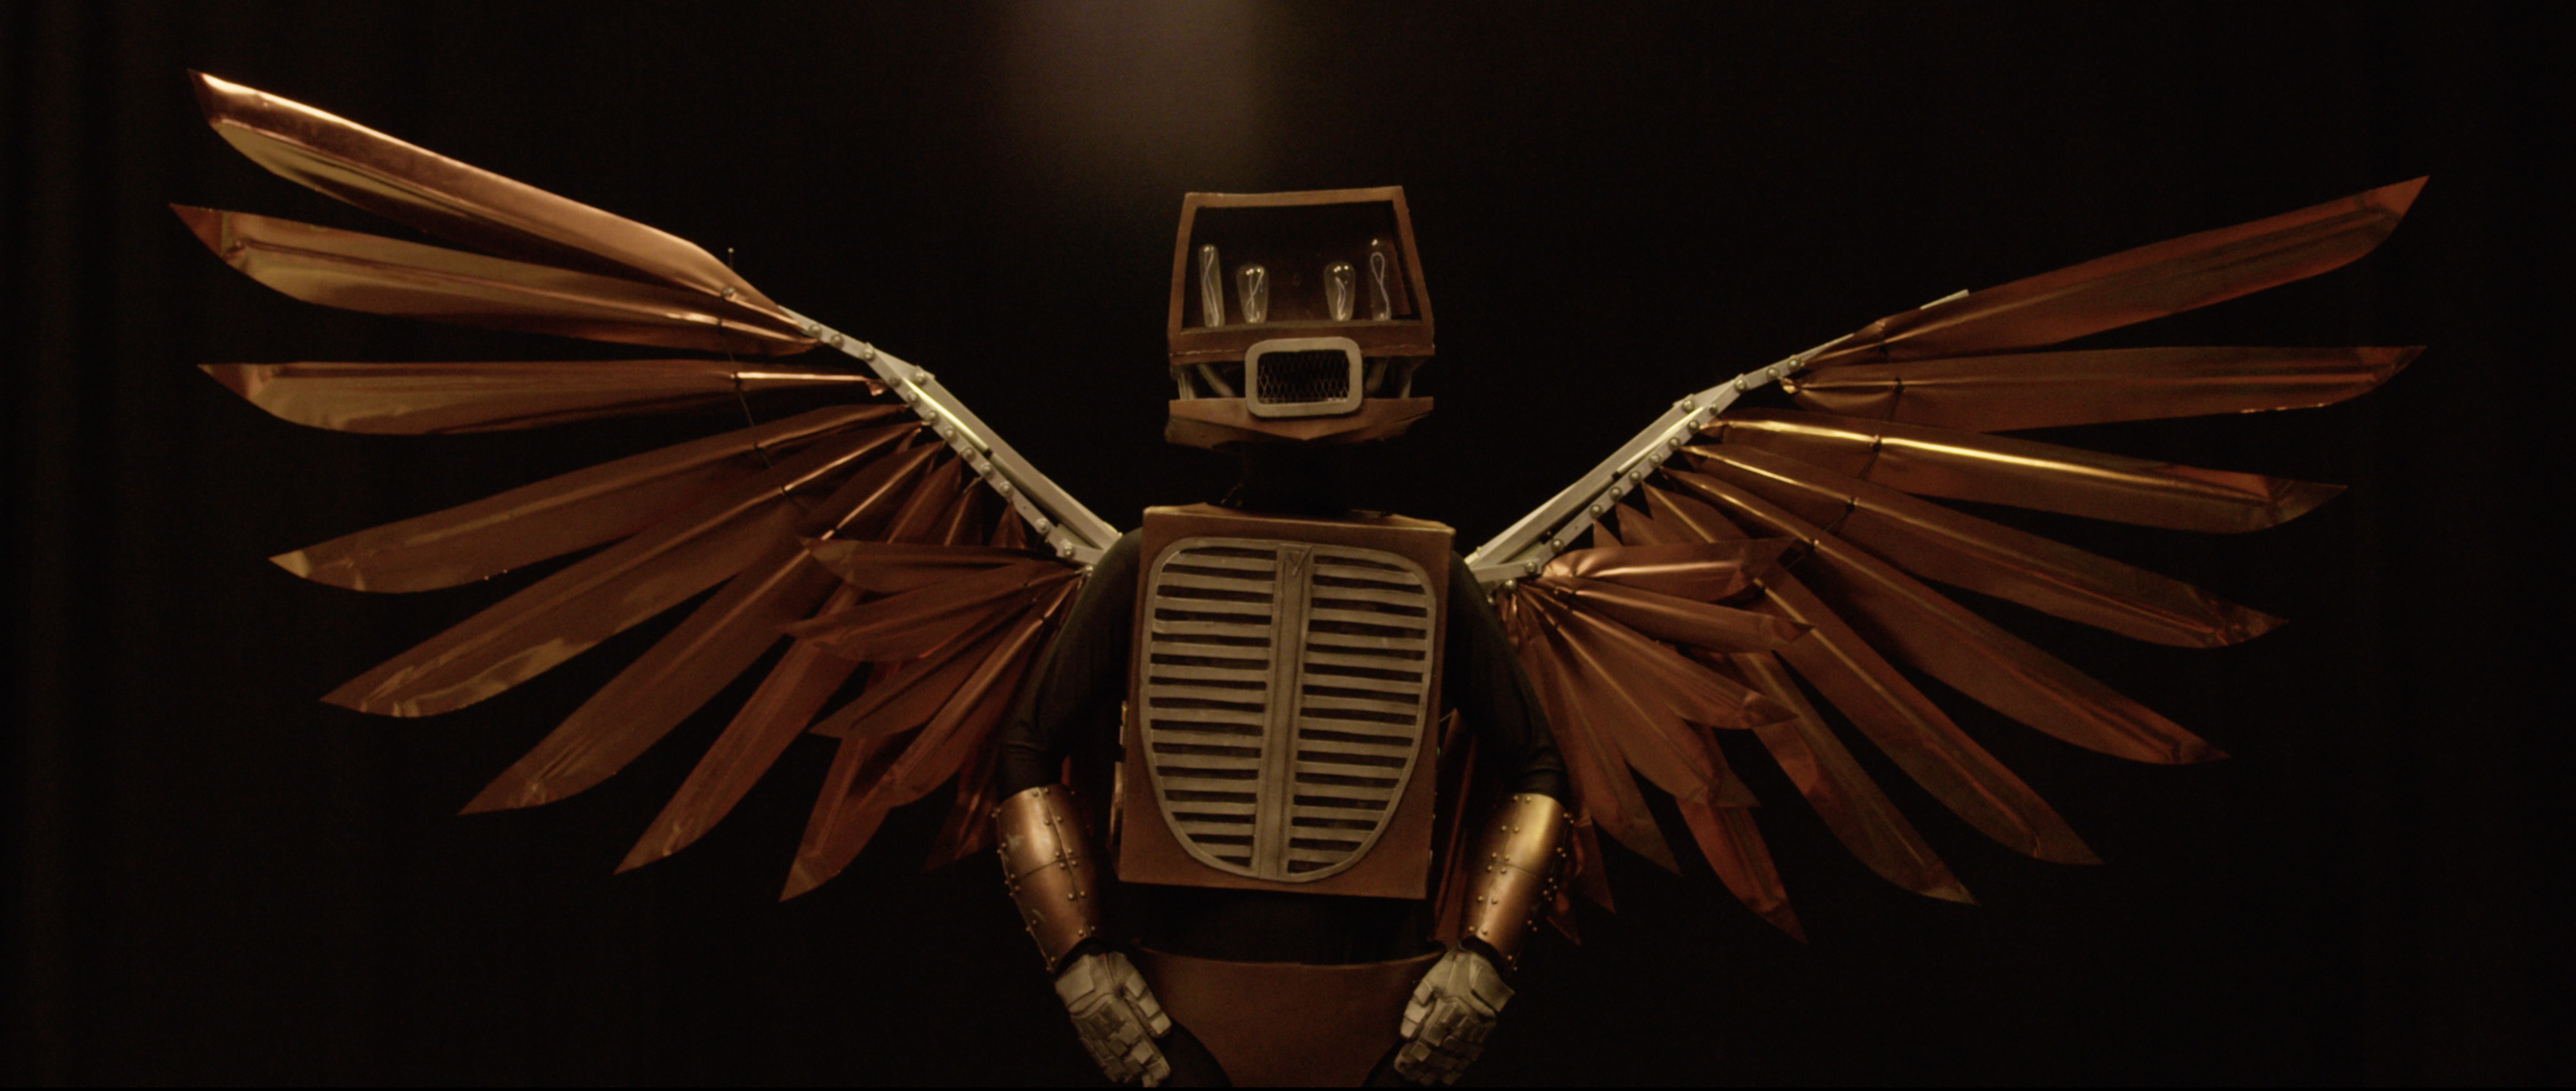 Break The Robot Drops Heavenly Music Video For 'Life Goes On